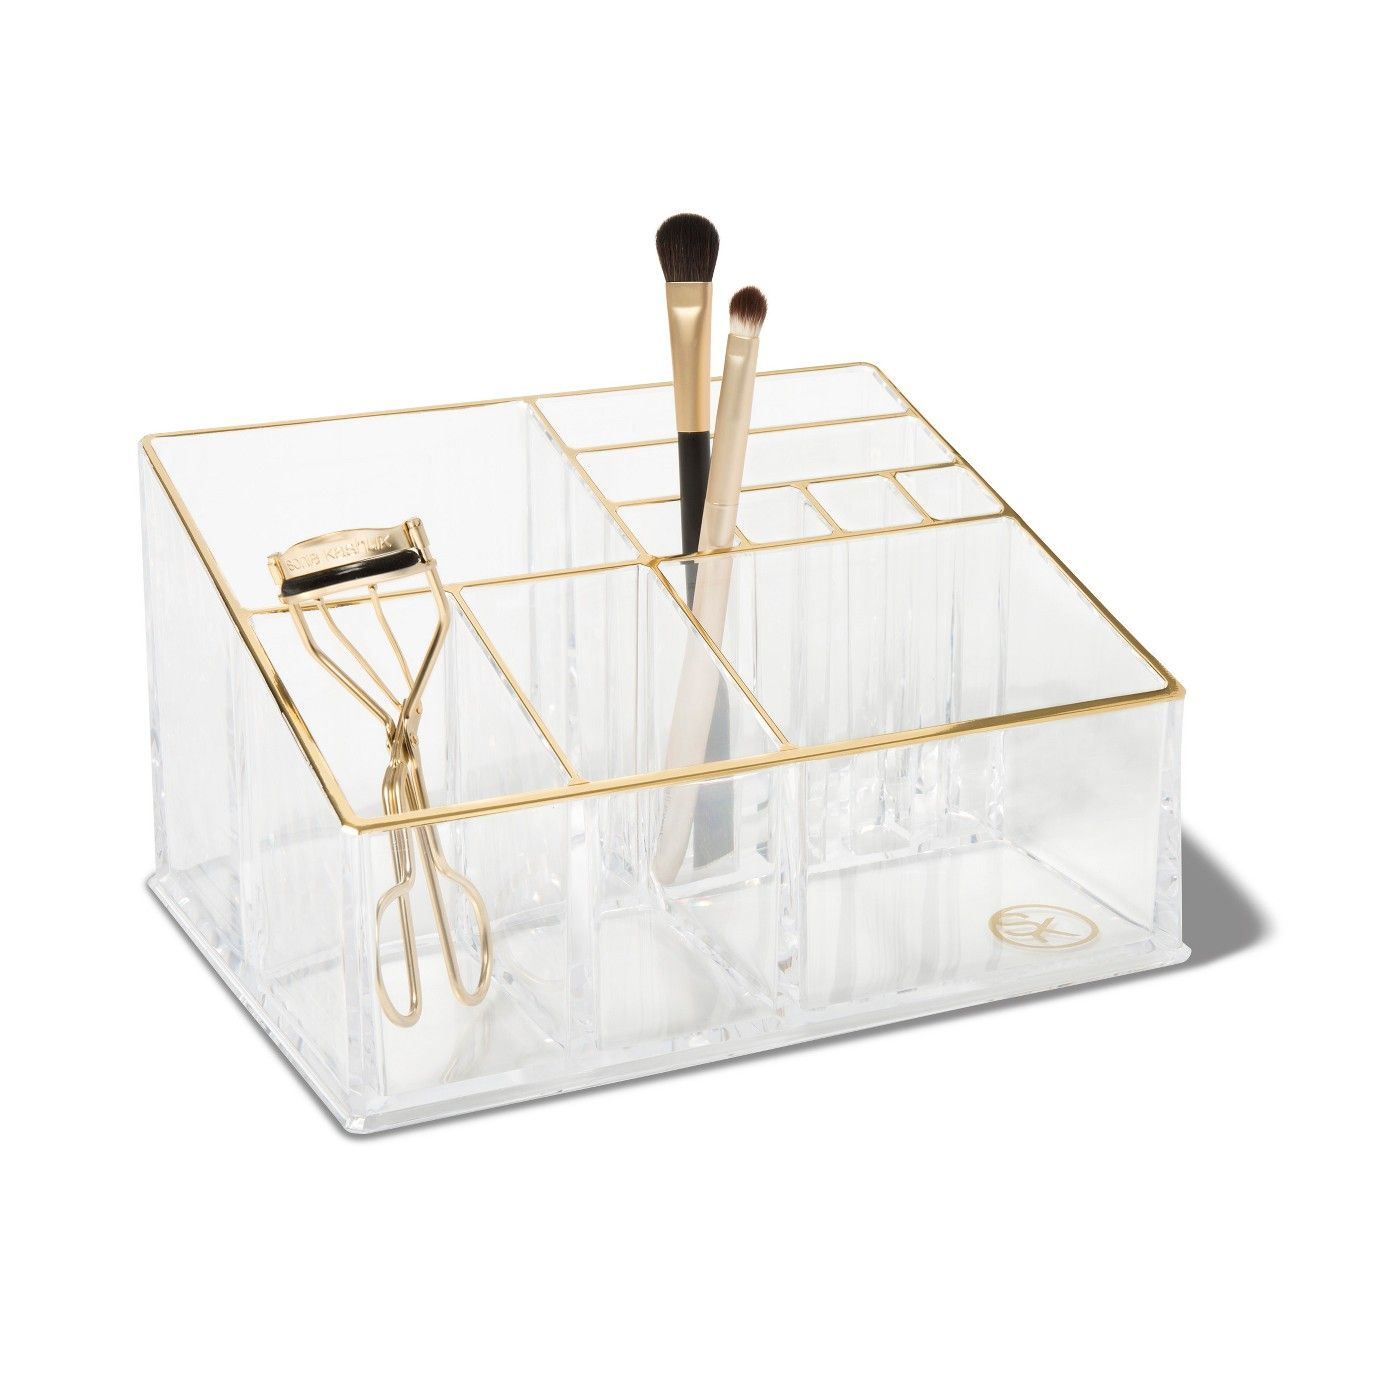 Sonia Kashuk Countertop Makeup Tray Organizer Clear Tray